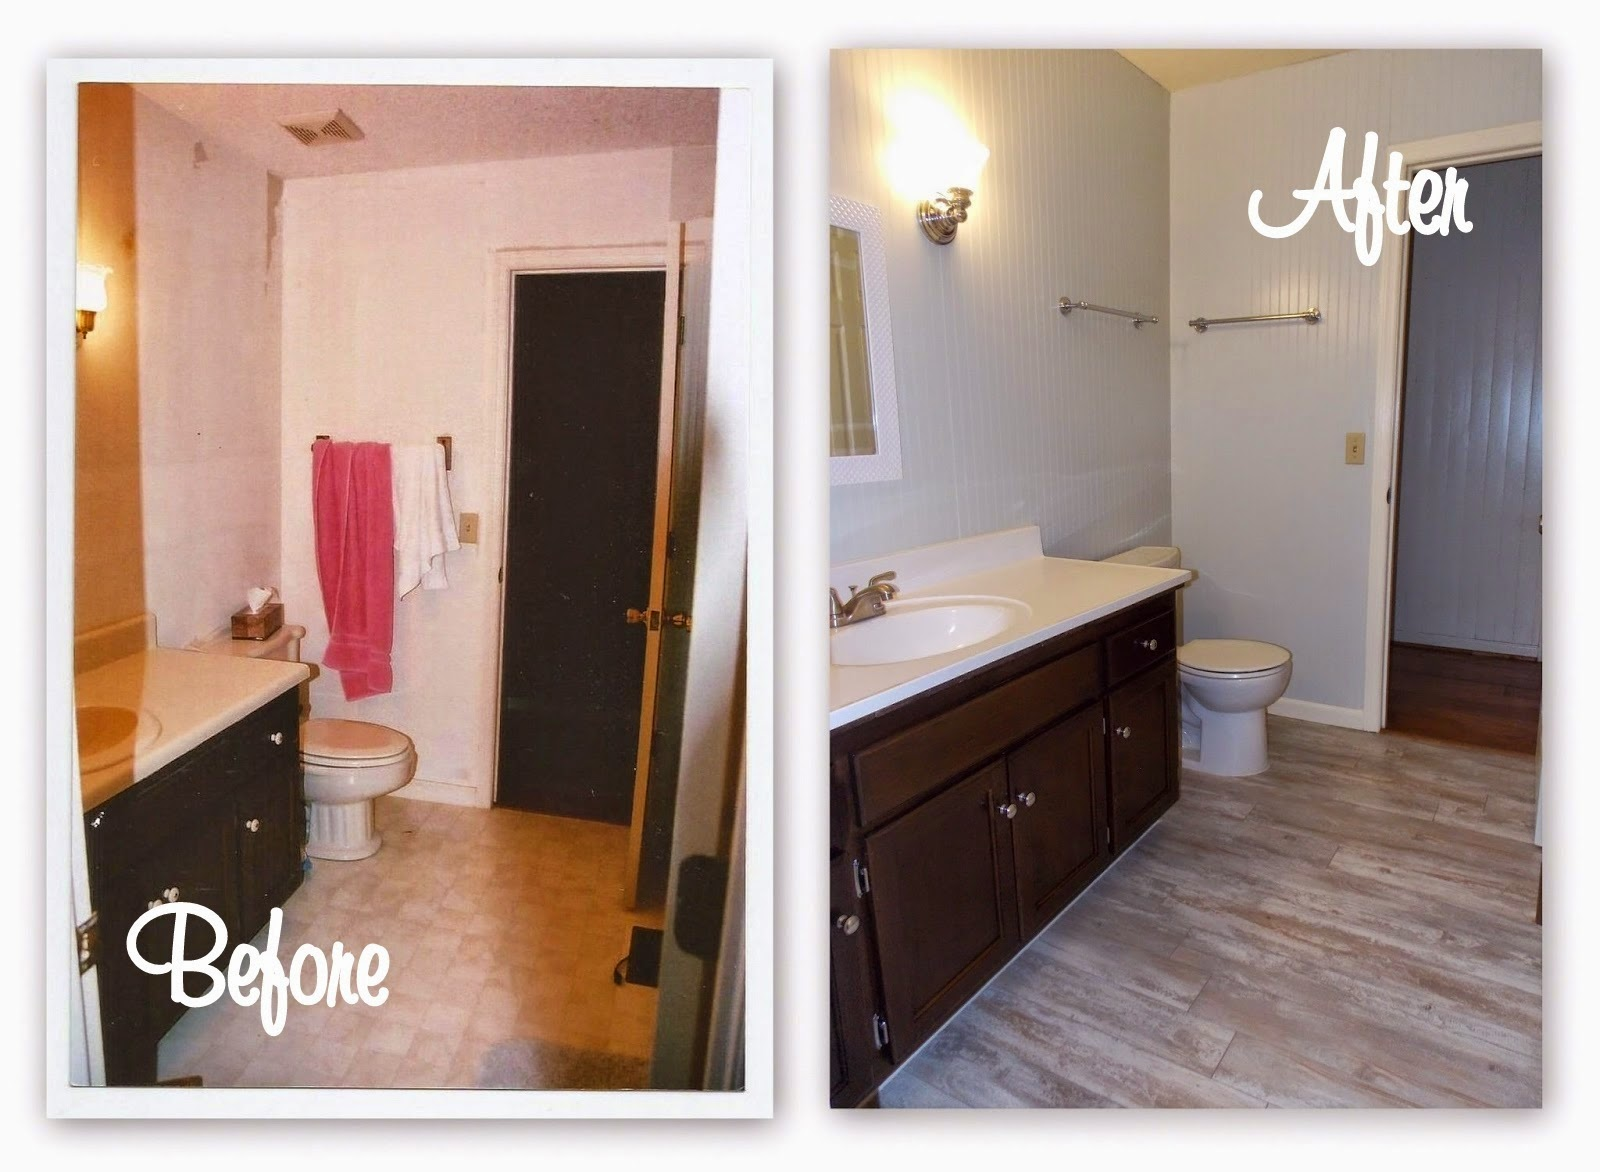 How To Paint Kitchen Cabinets Without Streaks Home Sweet Home With Holly Bathroom Makeover On A Budget